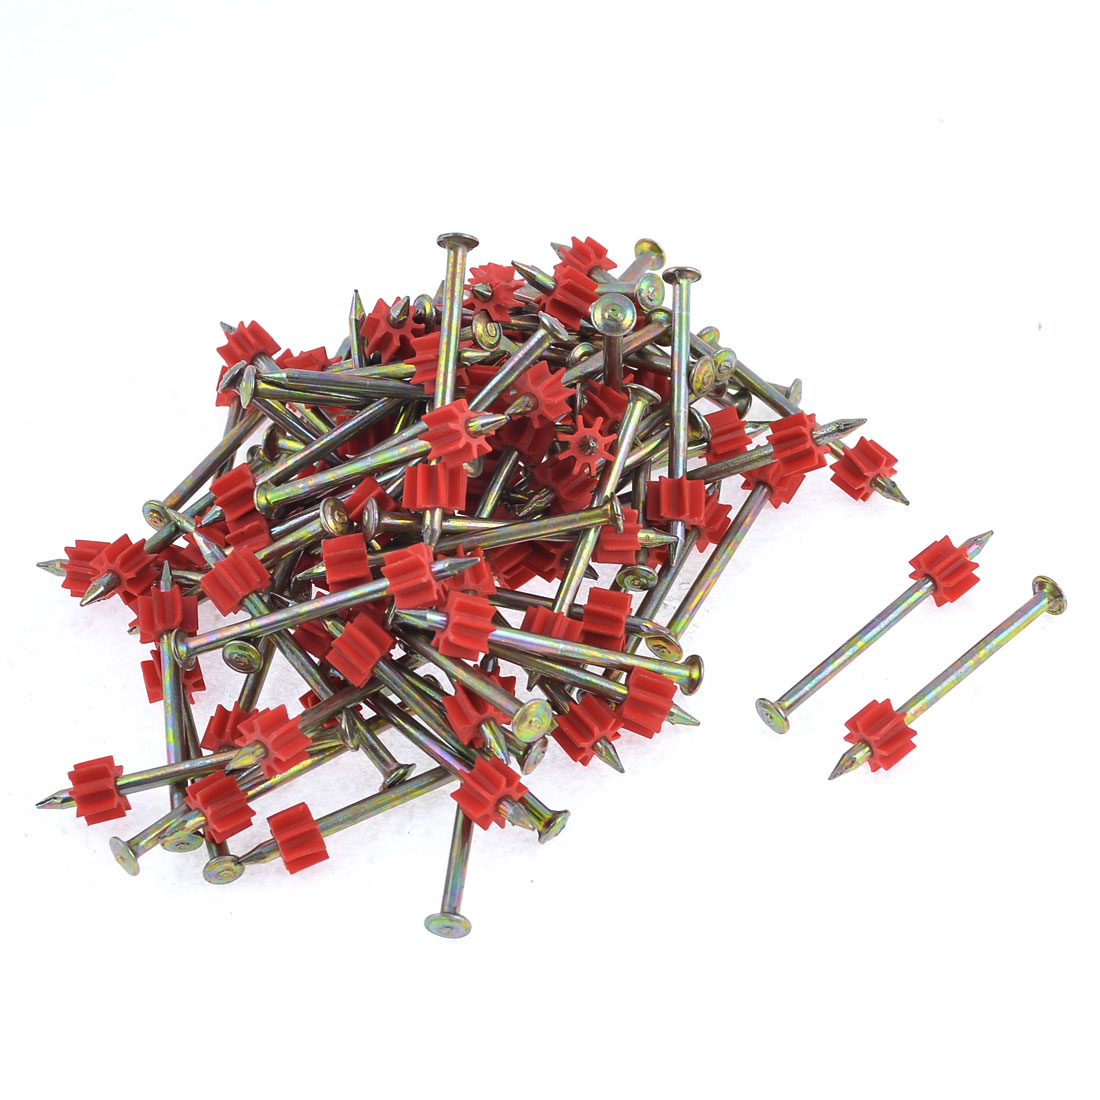 90 Pcs 3.3mm Dia Shank 50mm Long Power Hammer Drive Pins Fasteners